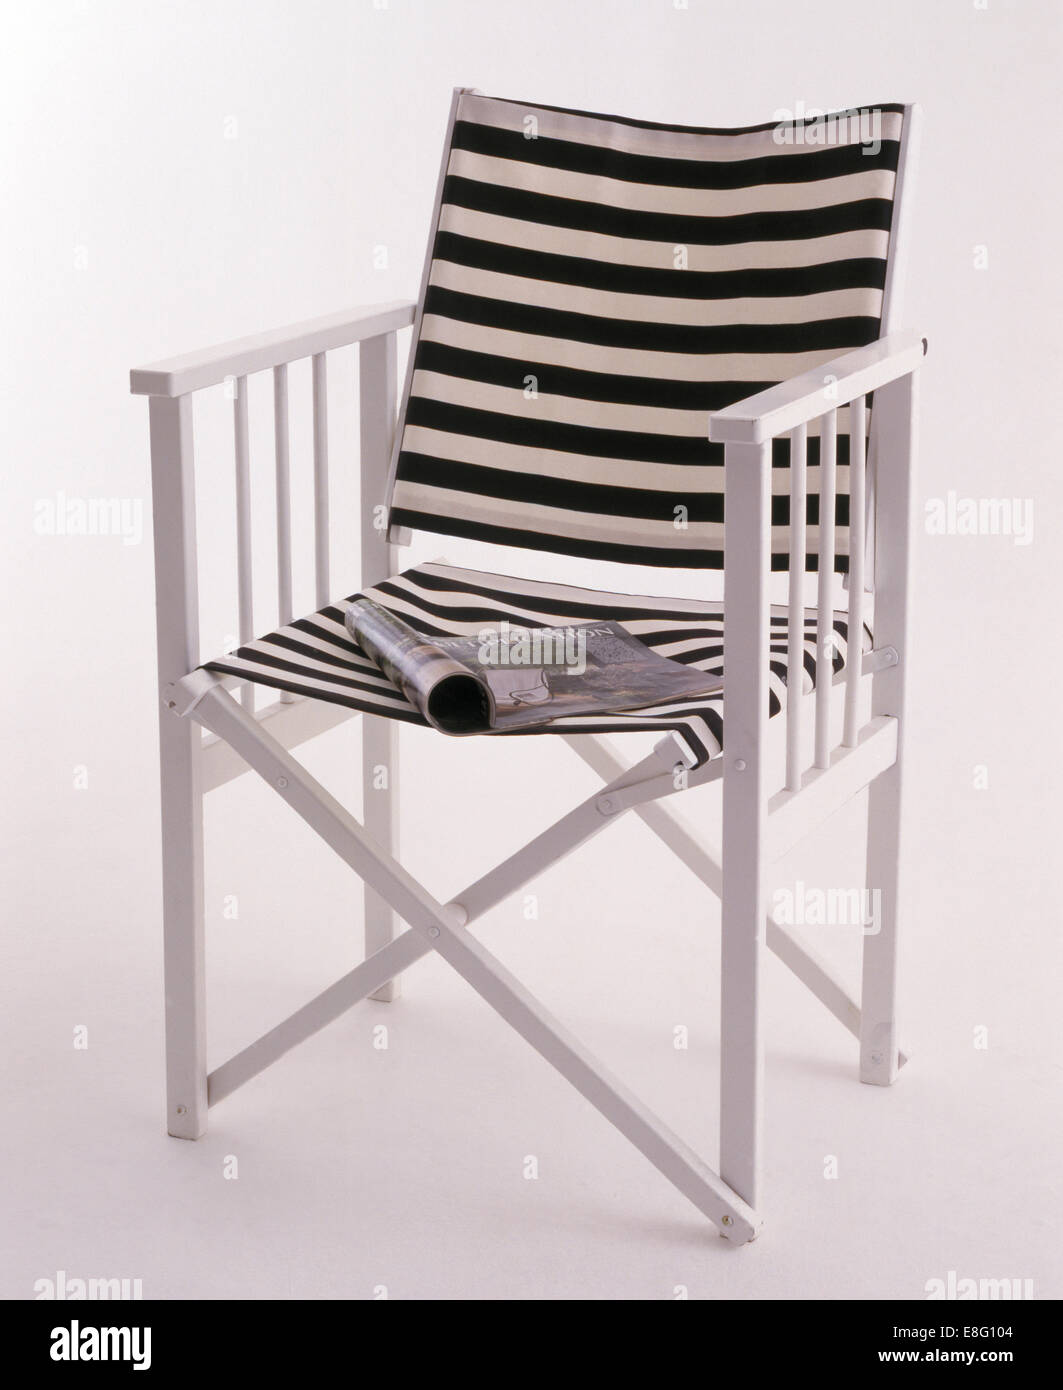 chair with blackwhite striped canvas back and seat - Black And White Striped Chair